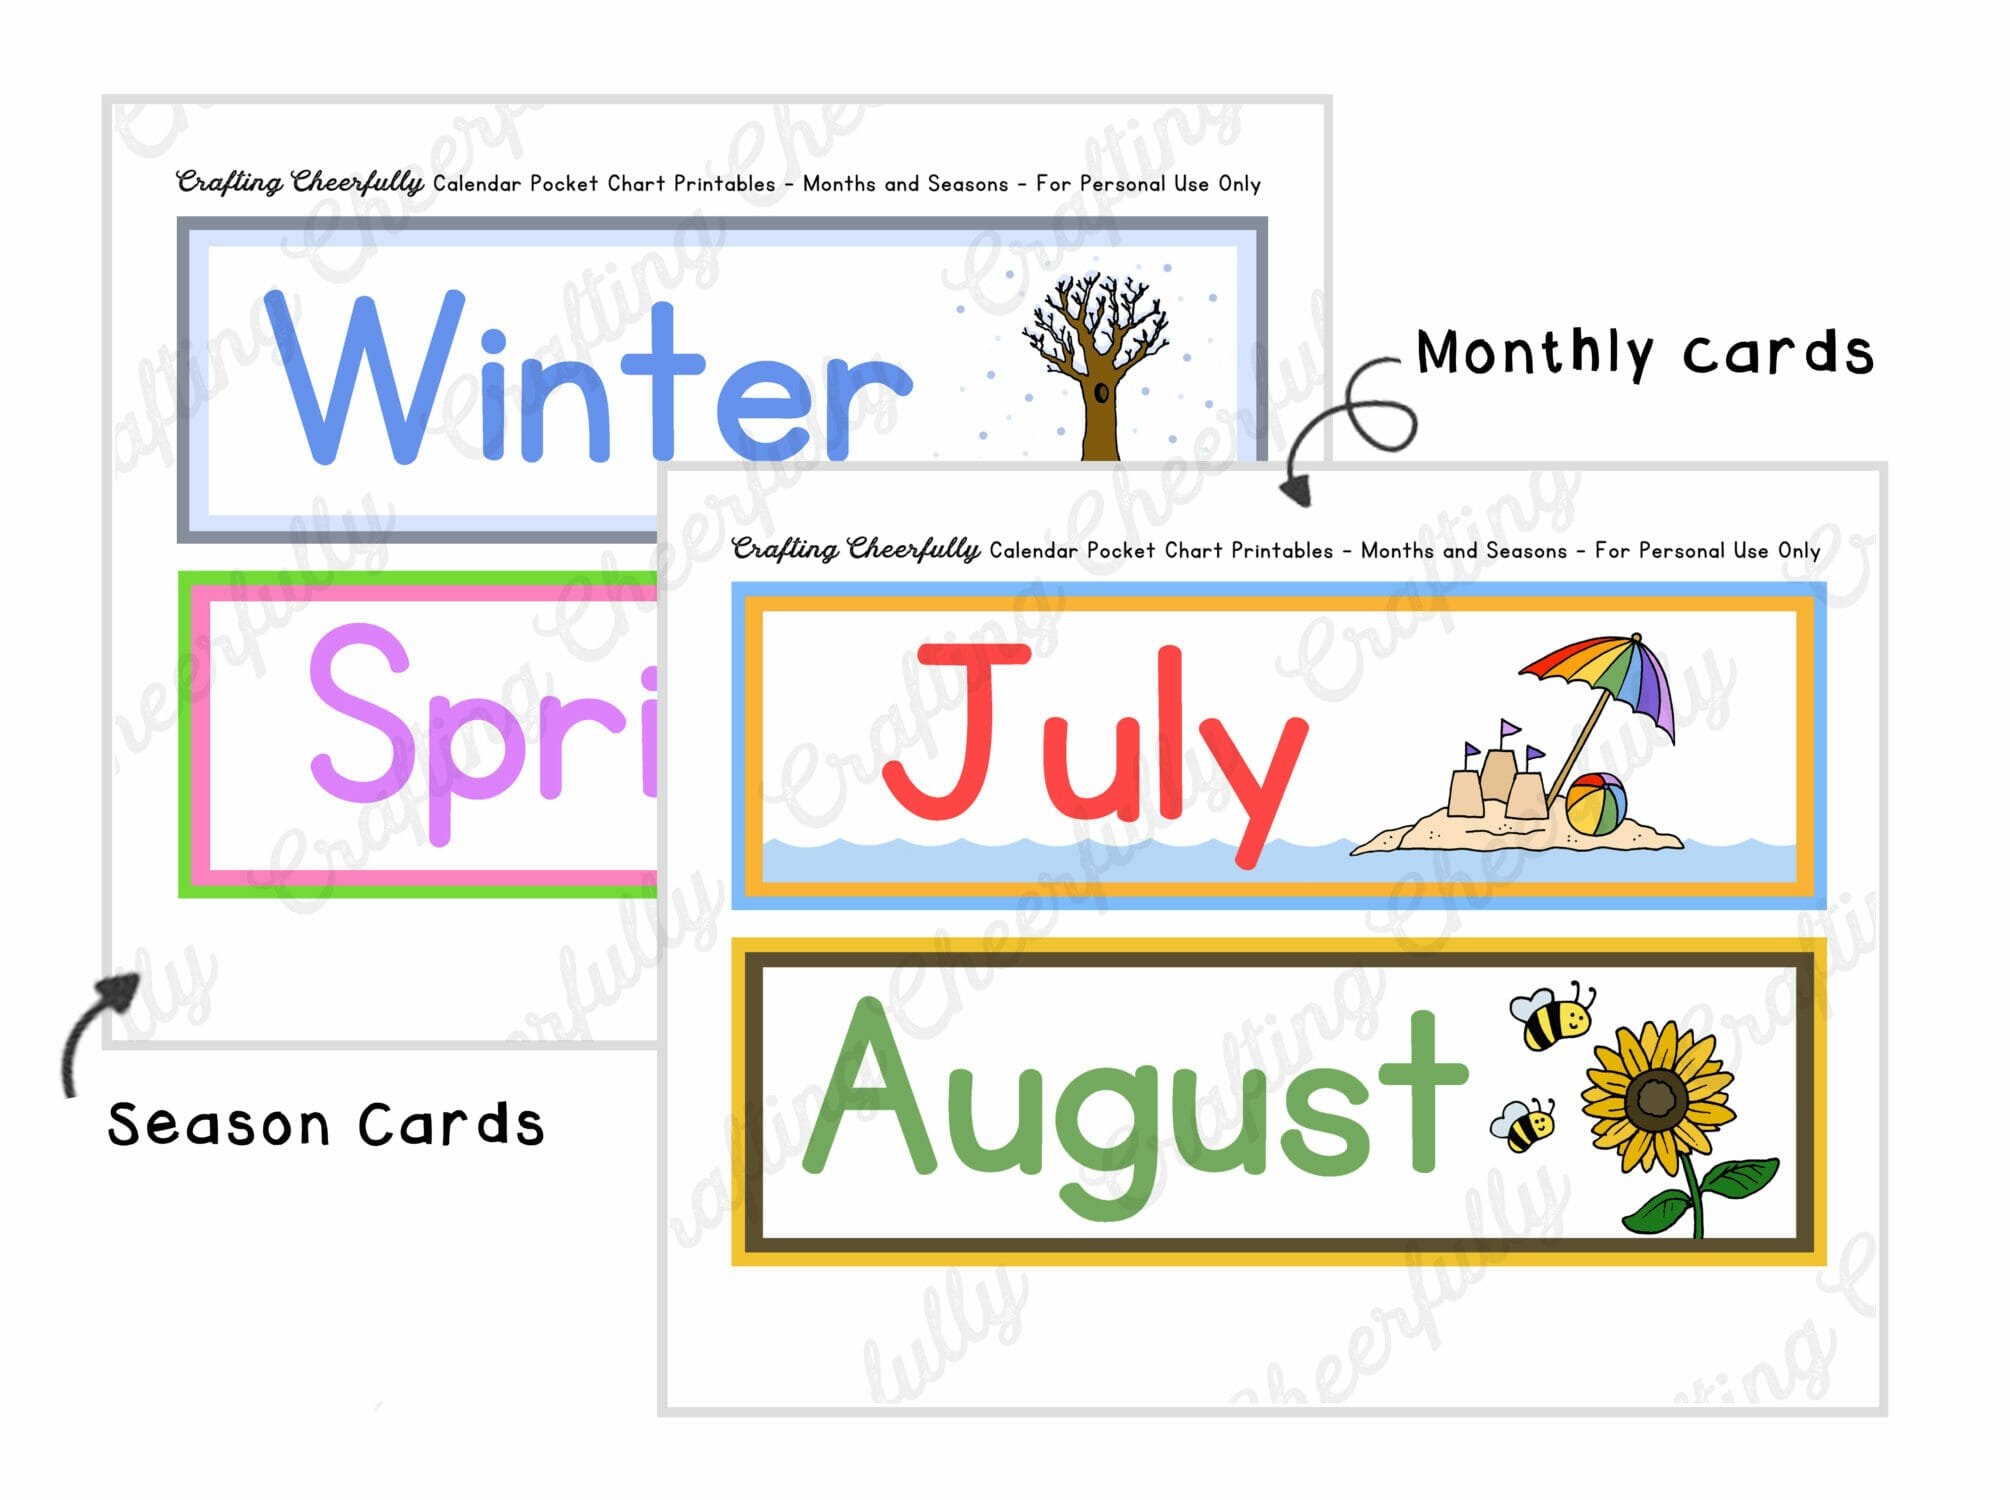 Pocket chart printables showing monthly cards.